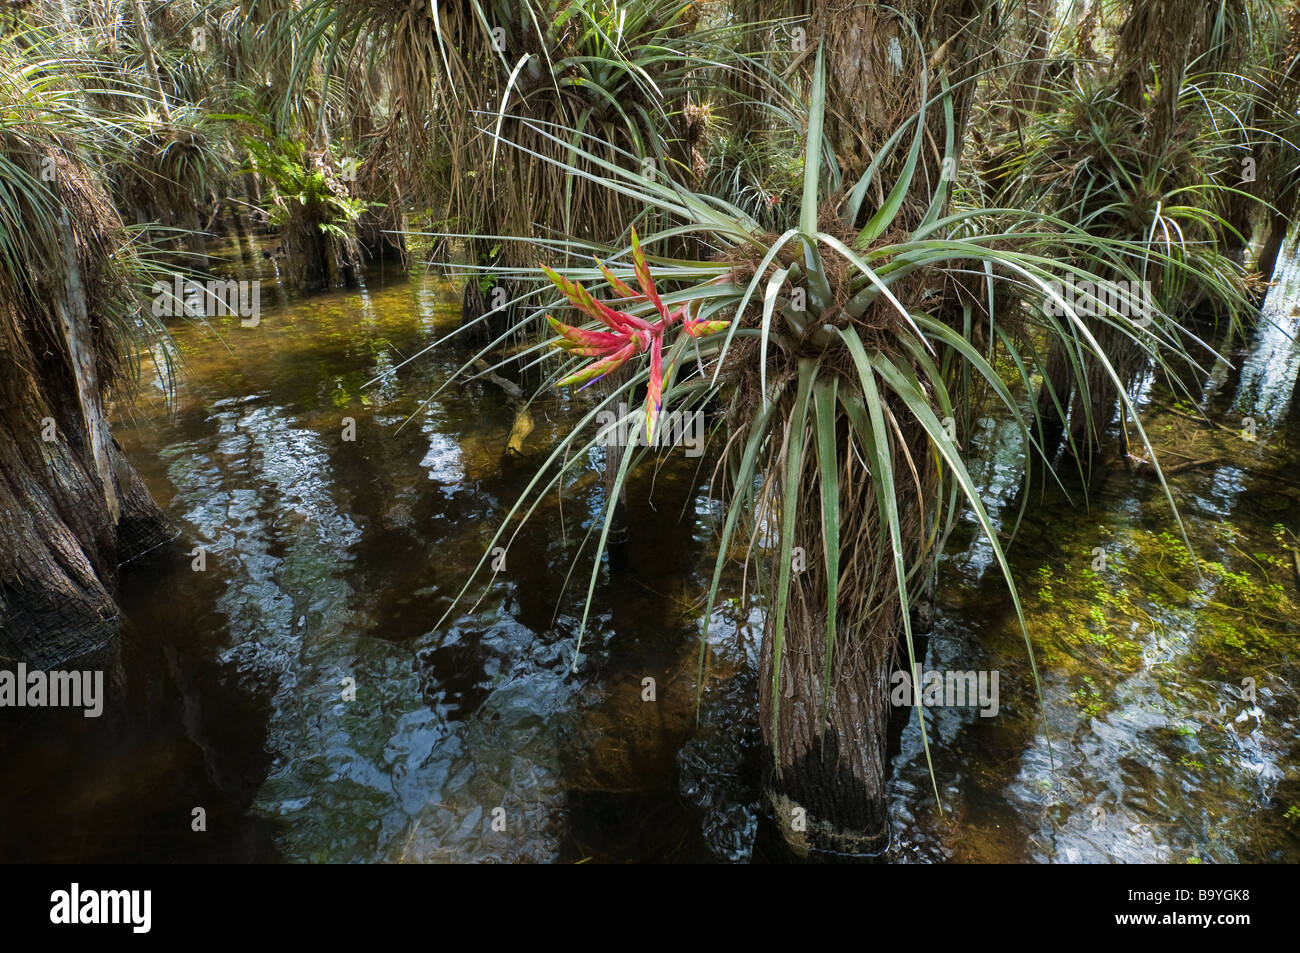 wild pine or quill leaf air plant flowers in bald cypress tree hammock everglades national park florida wild pine or quill leaf air plant flowers in bald cypress tree      rh   alamy